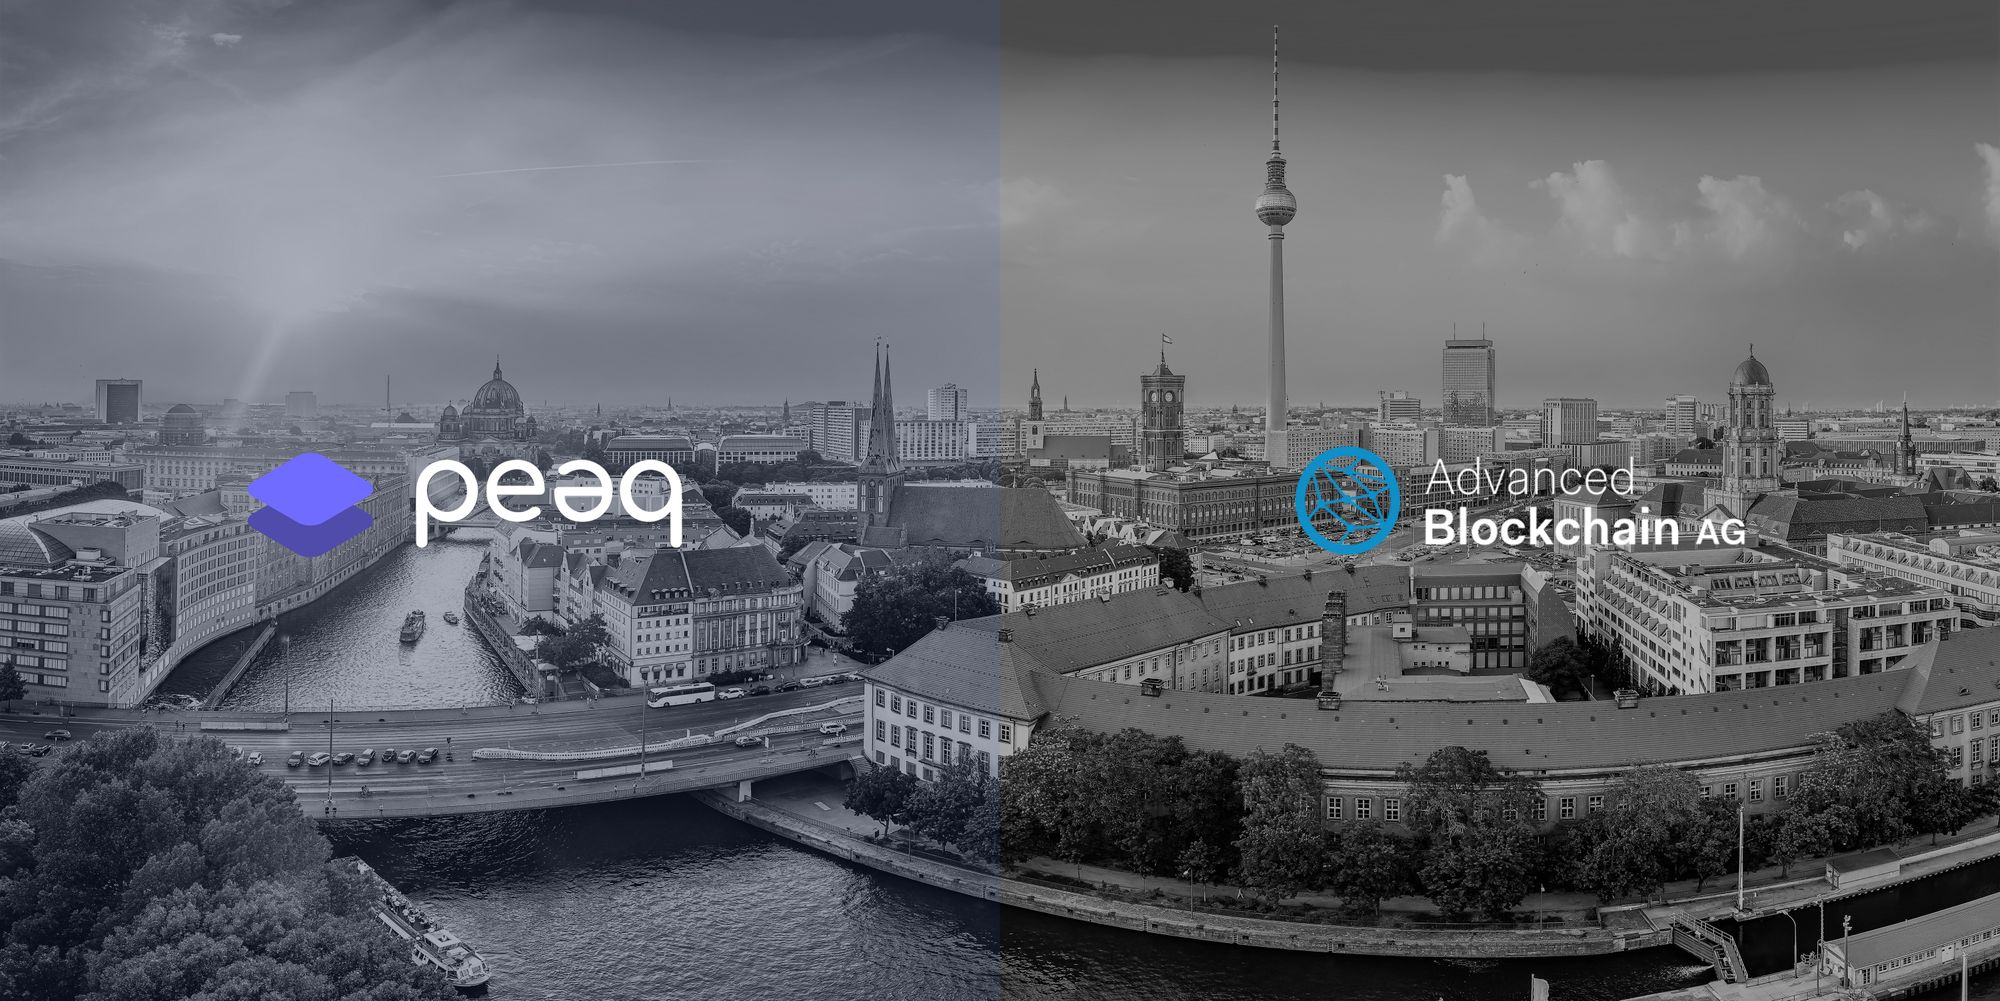 Advanced Blockchain AG's Portfolio Company, peaq, Signs a Memorandum of Understanding with a Prominent German Auto Company